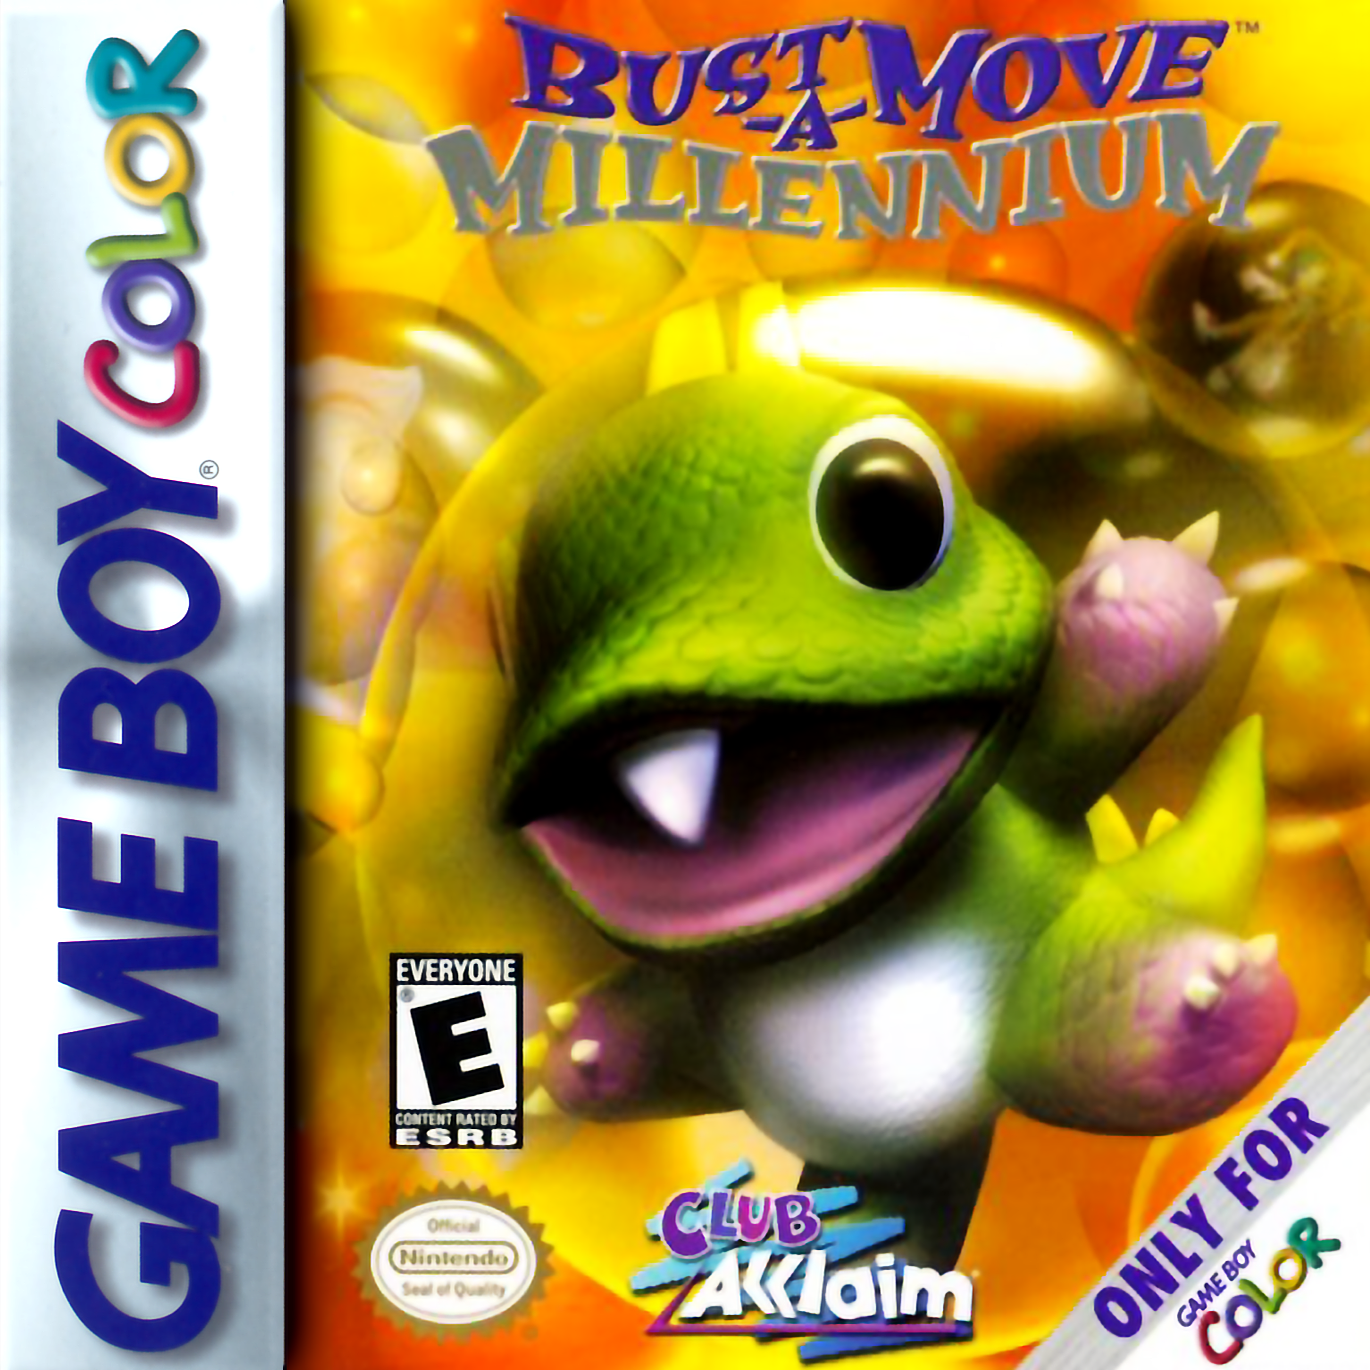 Game boy color online games - Bust A Move Millennium Nintendo Game Boy Color Cover Artwork